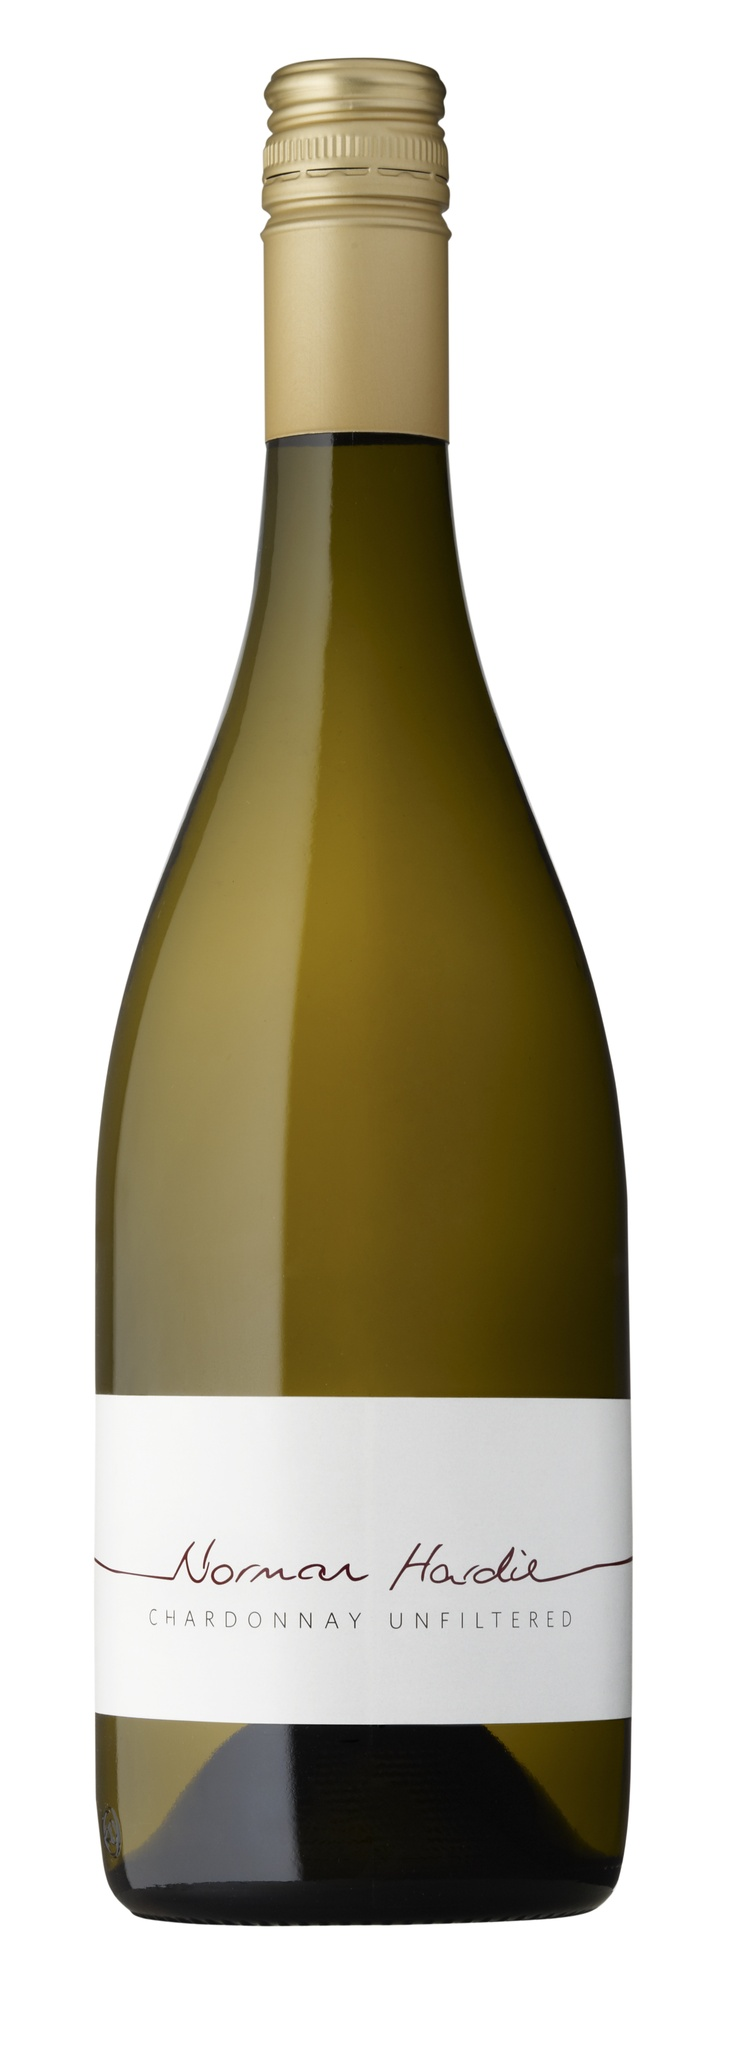 Norman Hardie's 2008 Chardonnay Unfiltered. Norman Hardie Winery and Vineyard is in Wellington (Prince Edward County), Ontario.